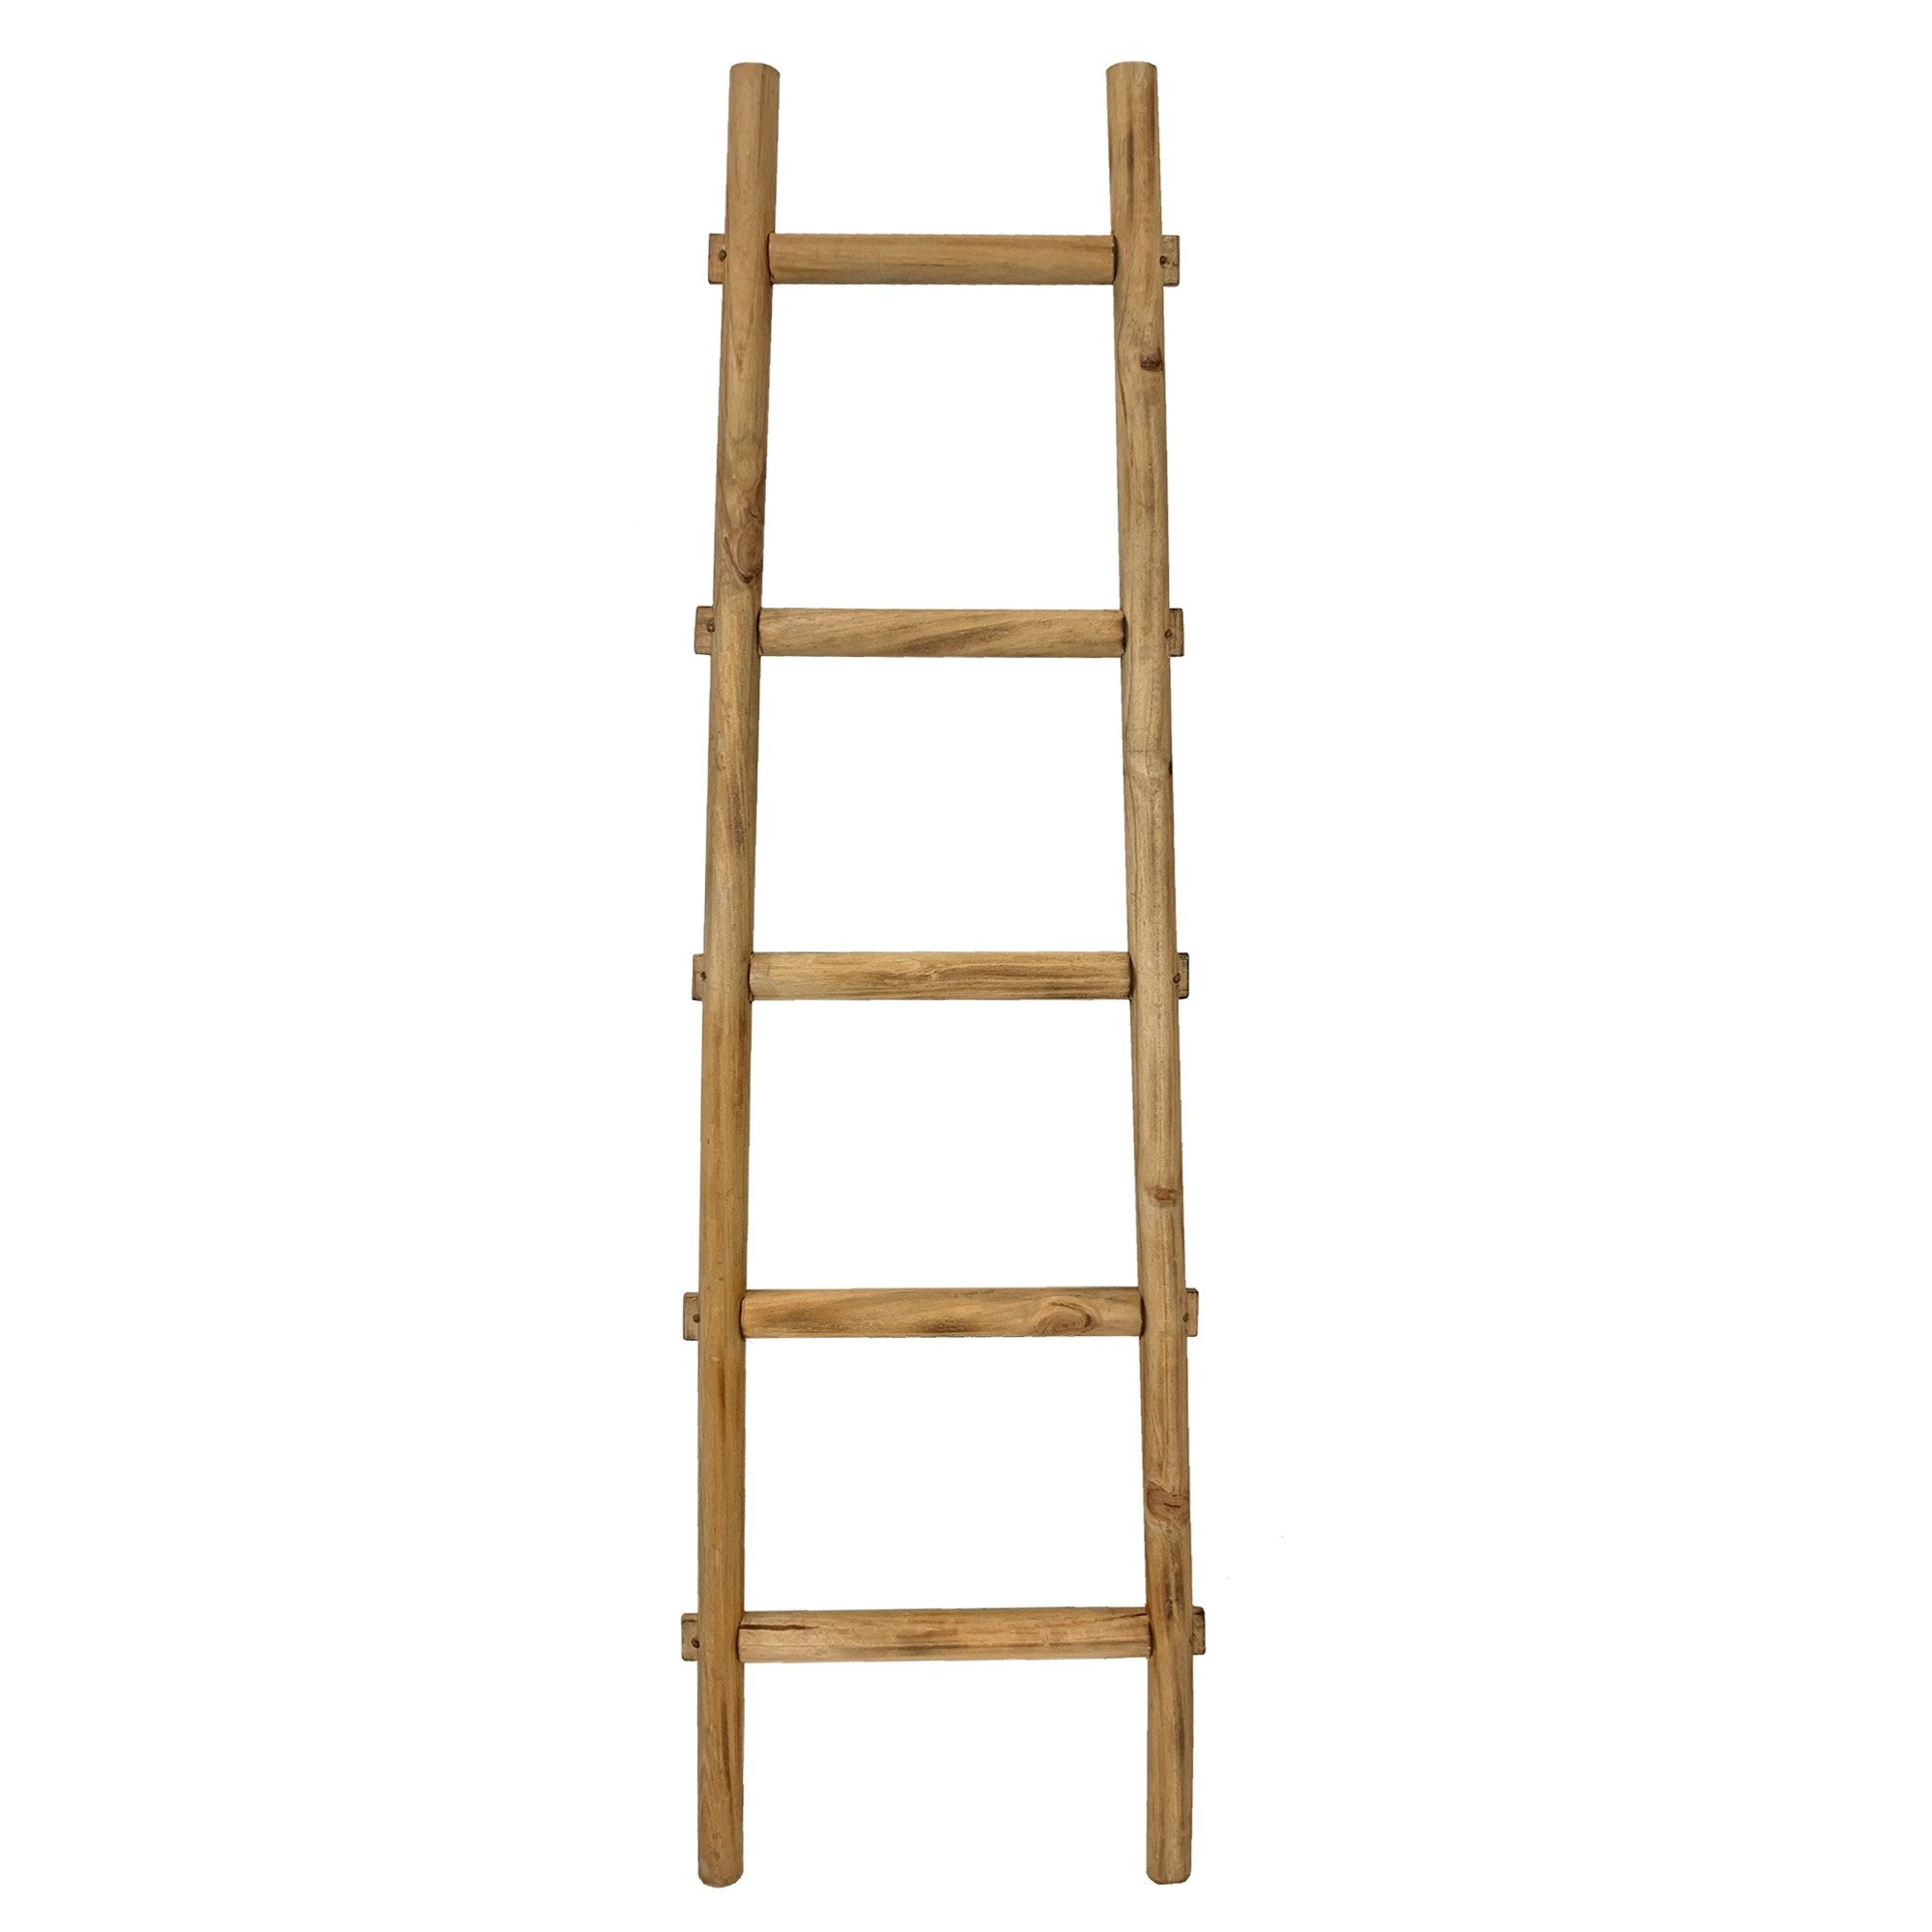 5 Step Brown Decorative Ladder Shelve